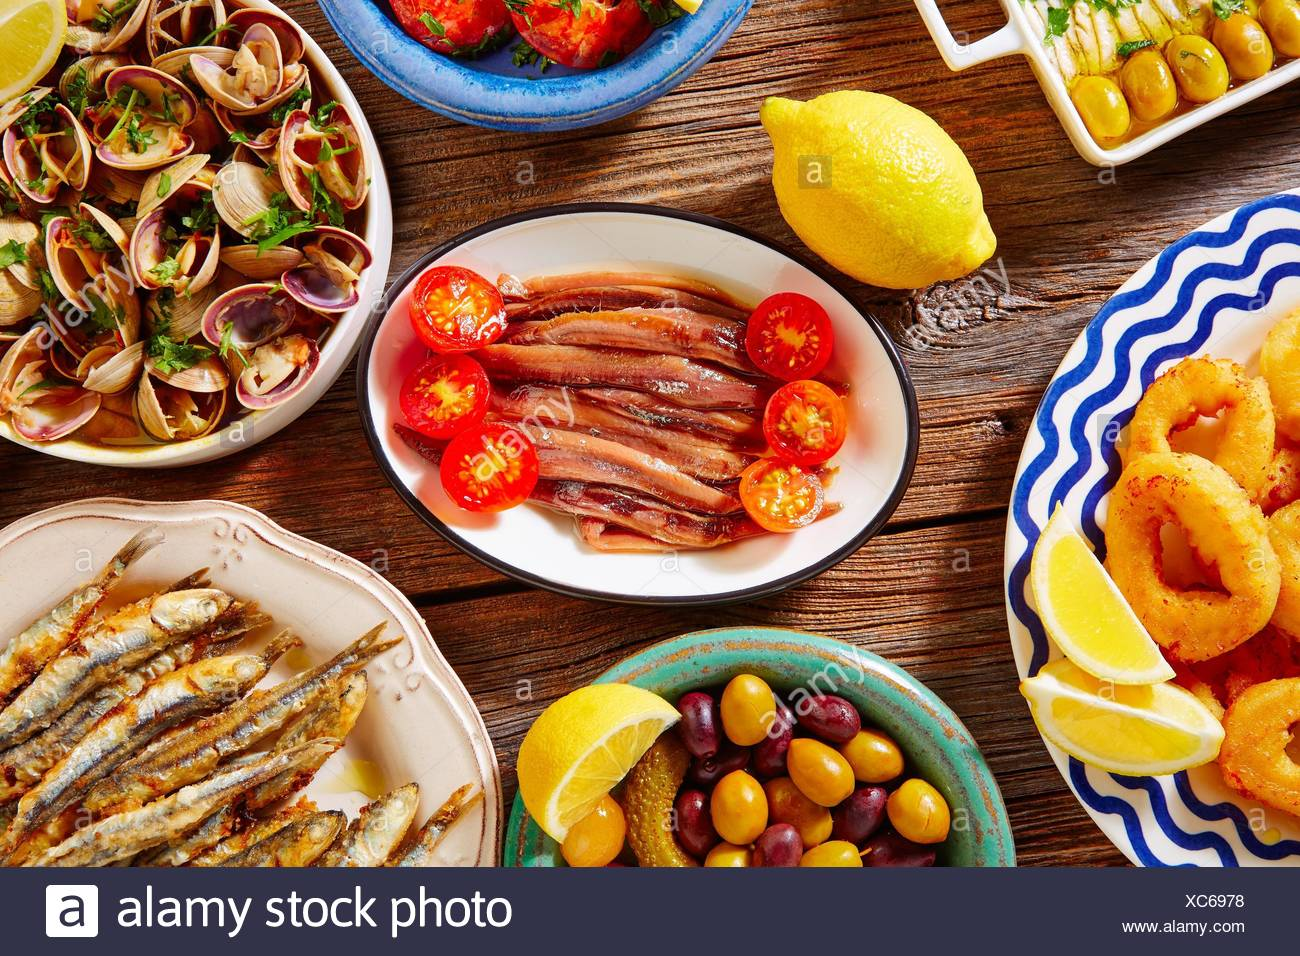 Tapas spanish seafood clams shrimps and fried anchovies fish. - Stock Image